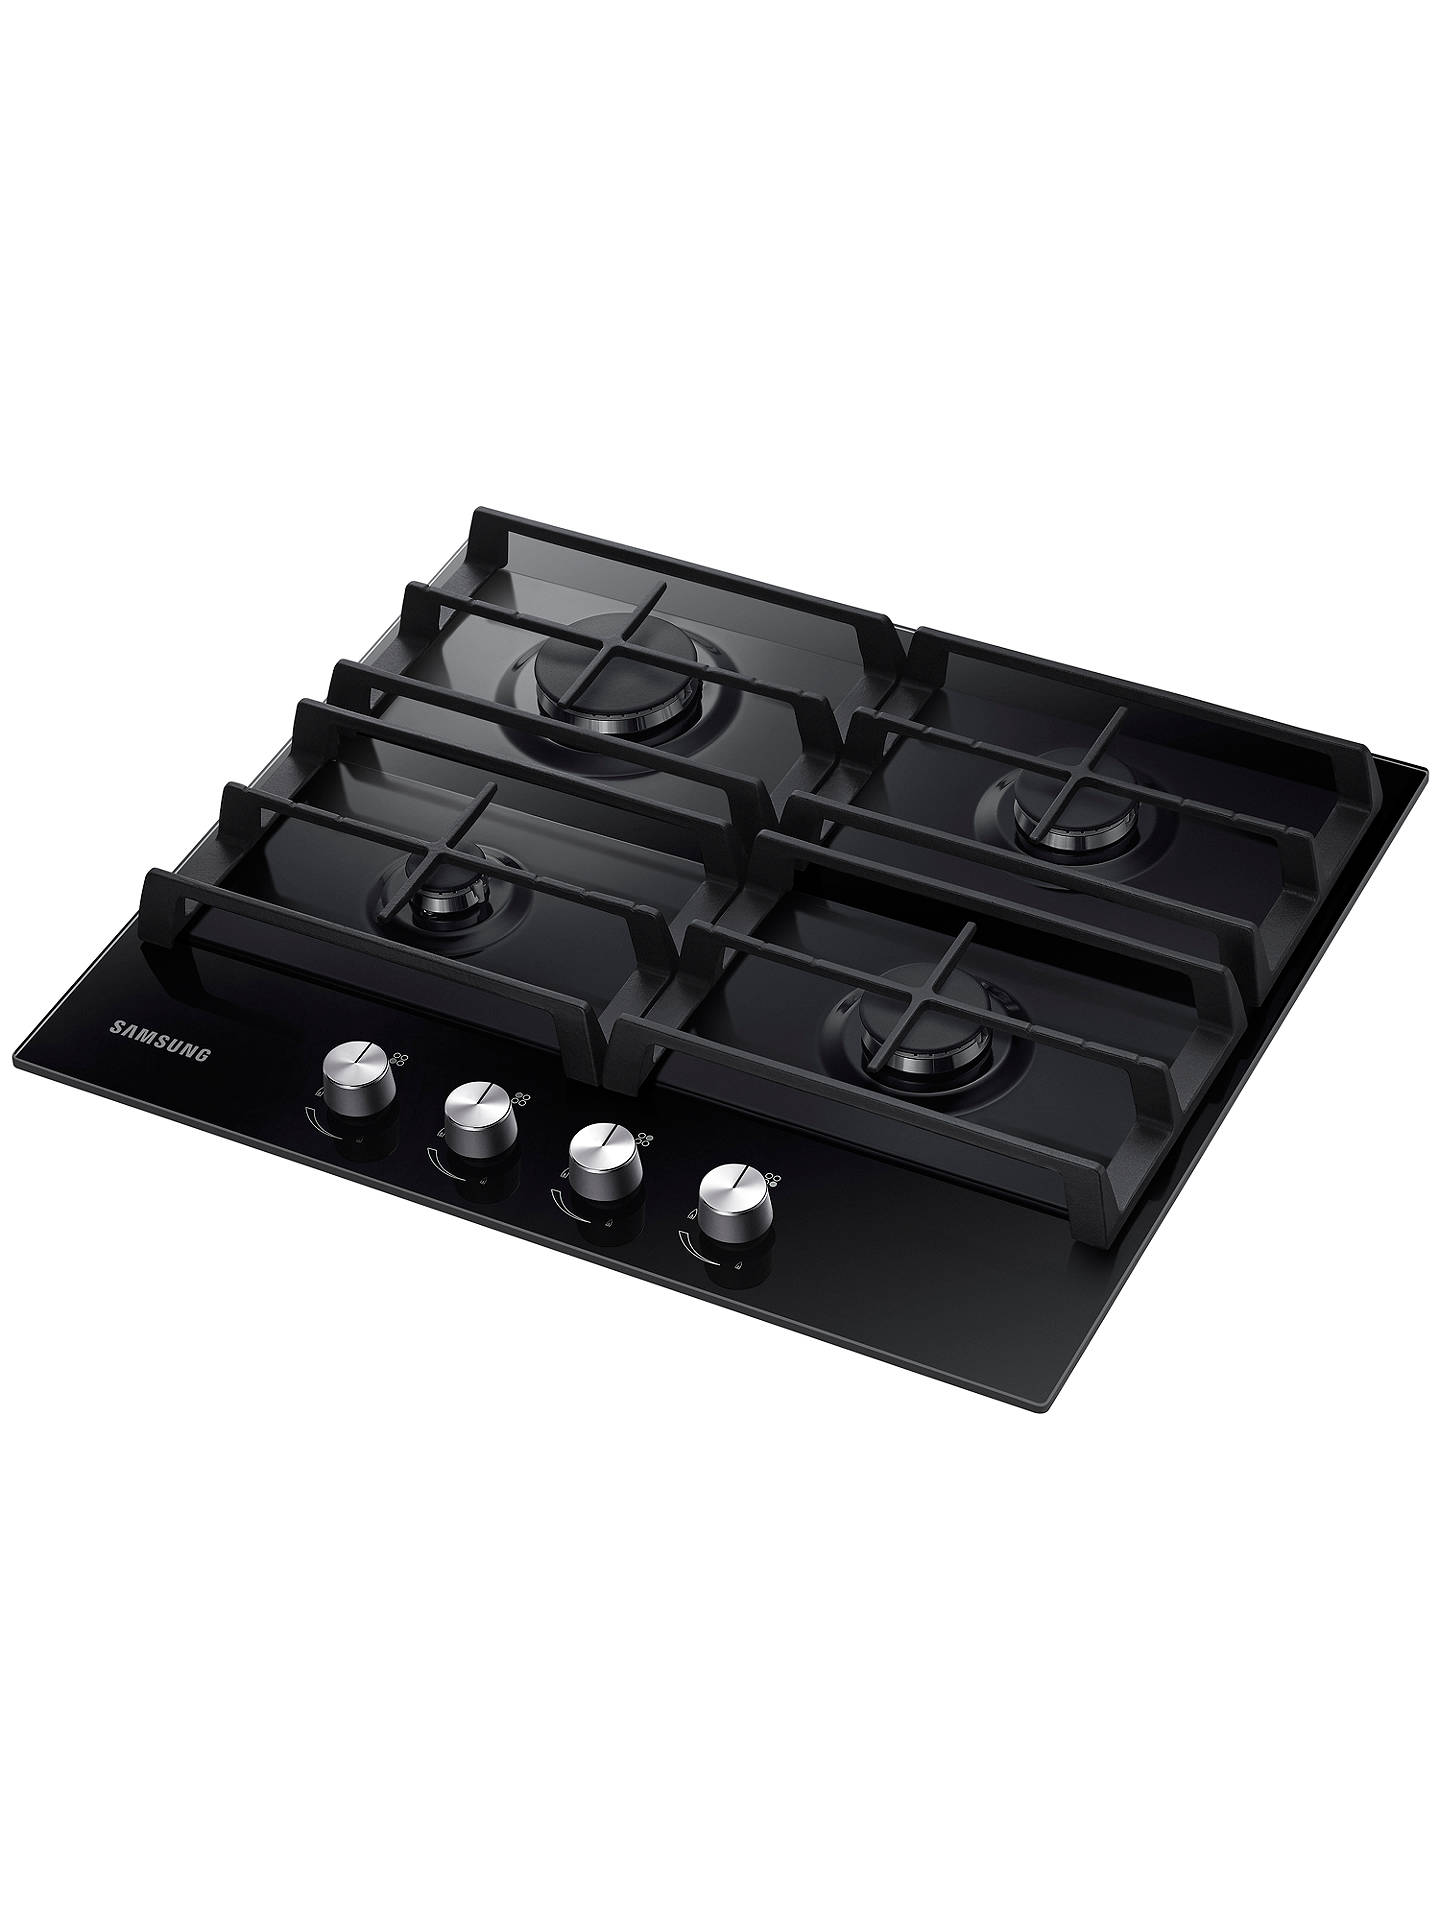 Buy Samsung NA64H3000AK Gas Hob, Black Online at johnlewis.com